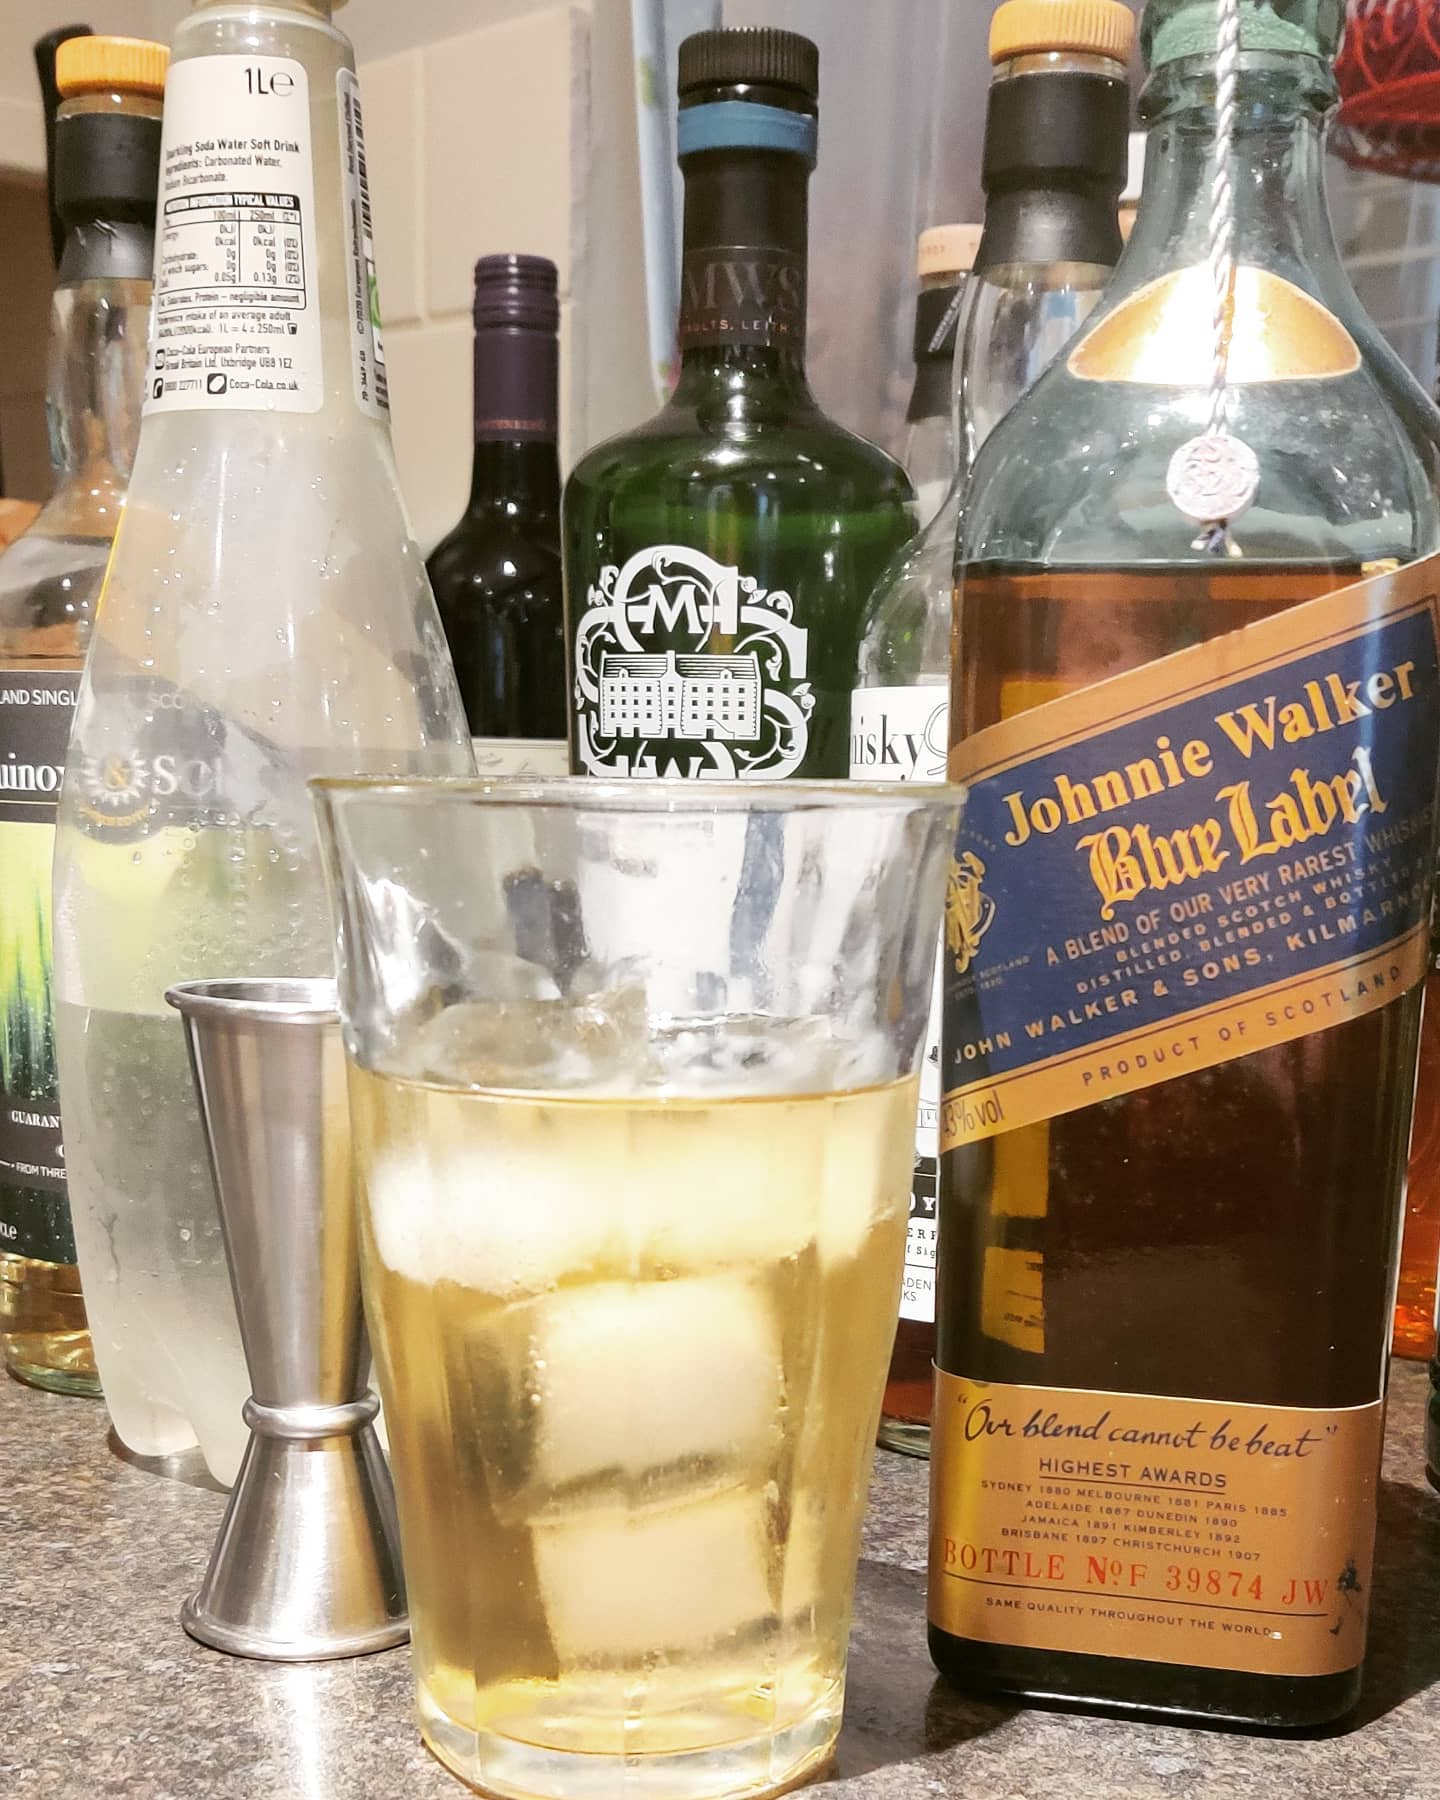 Blue Label highball in a crap holiday cottage chunky Ikea glass? DON'T MIND IF I DO! #leweekend #lovescotch #keepwalking